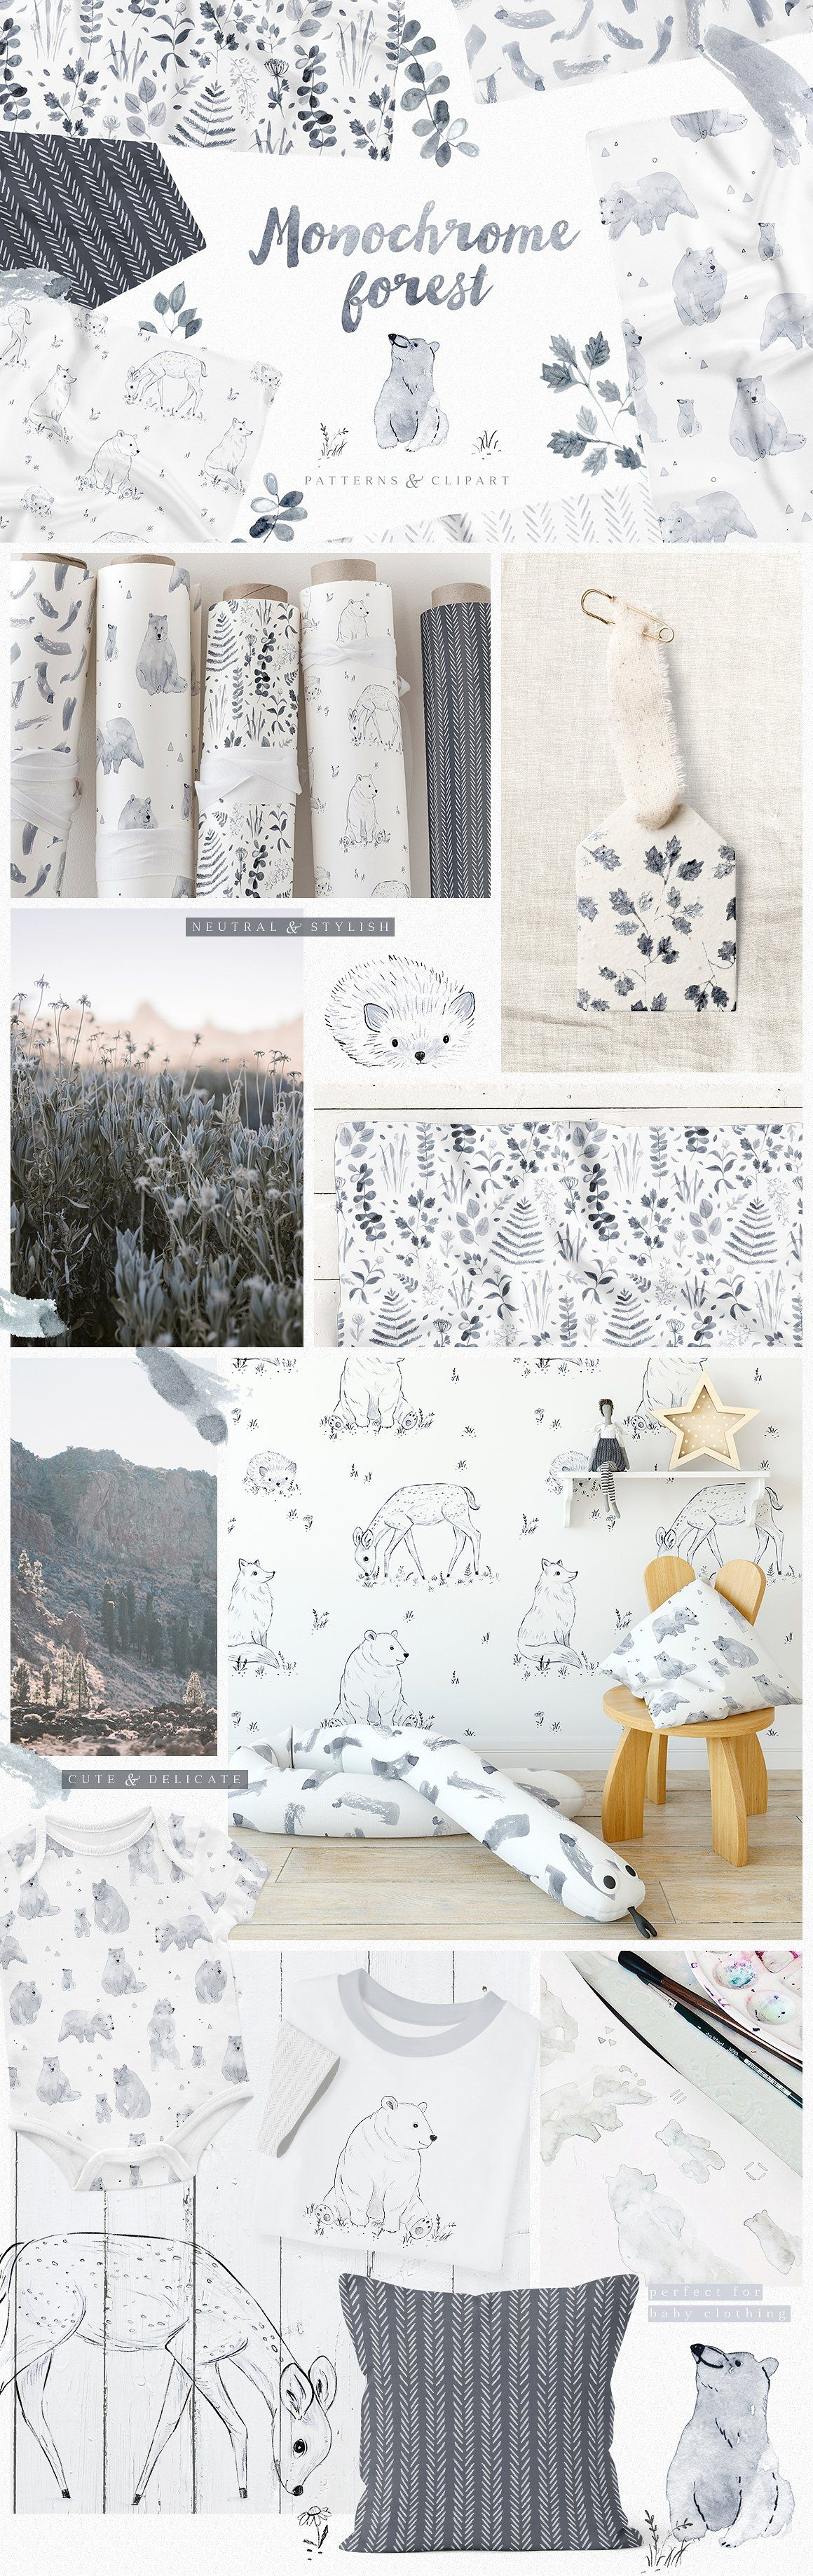 Monochrome Forest pattern collection